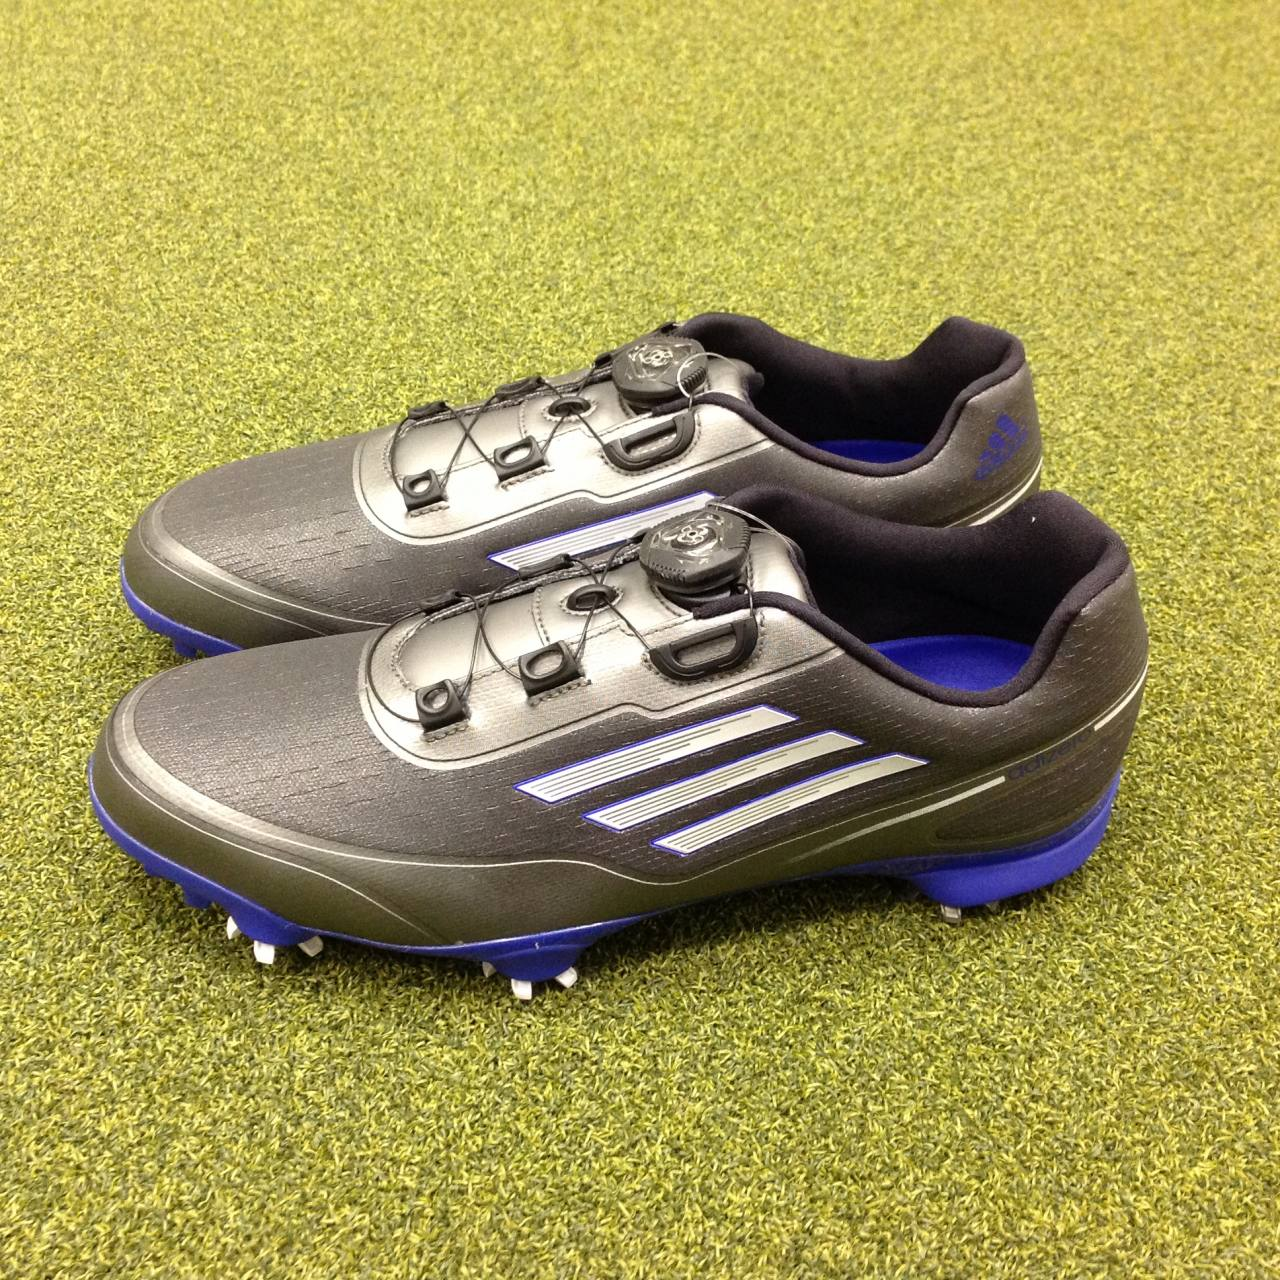 3a7a0bd54167b3 NEW Adidas Adizero Prime Boa Golf Shoes - UK Size 8.5 (Wide) - US 9 ...